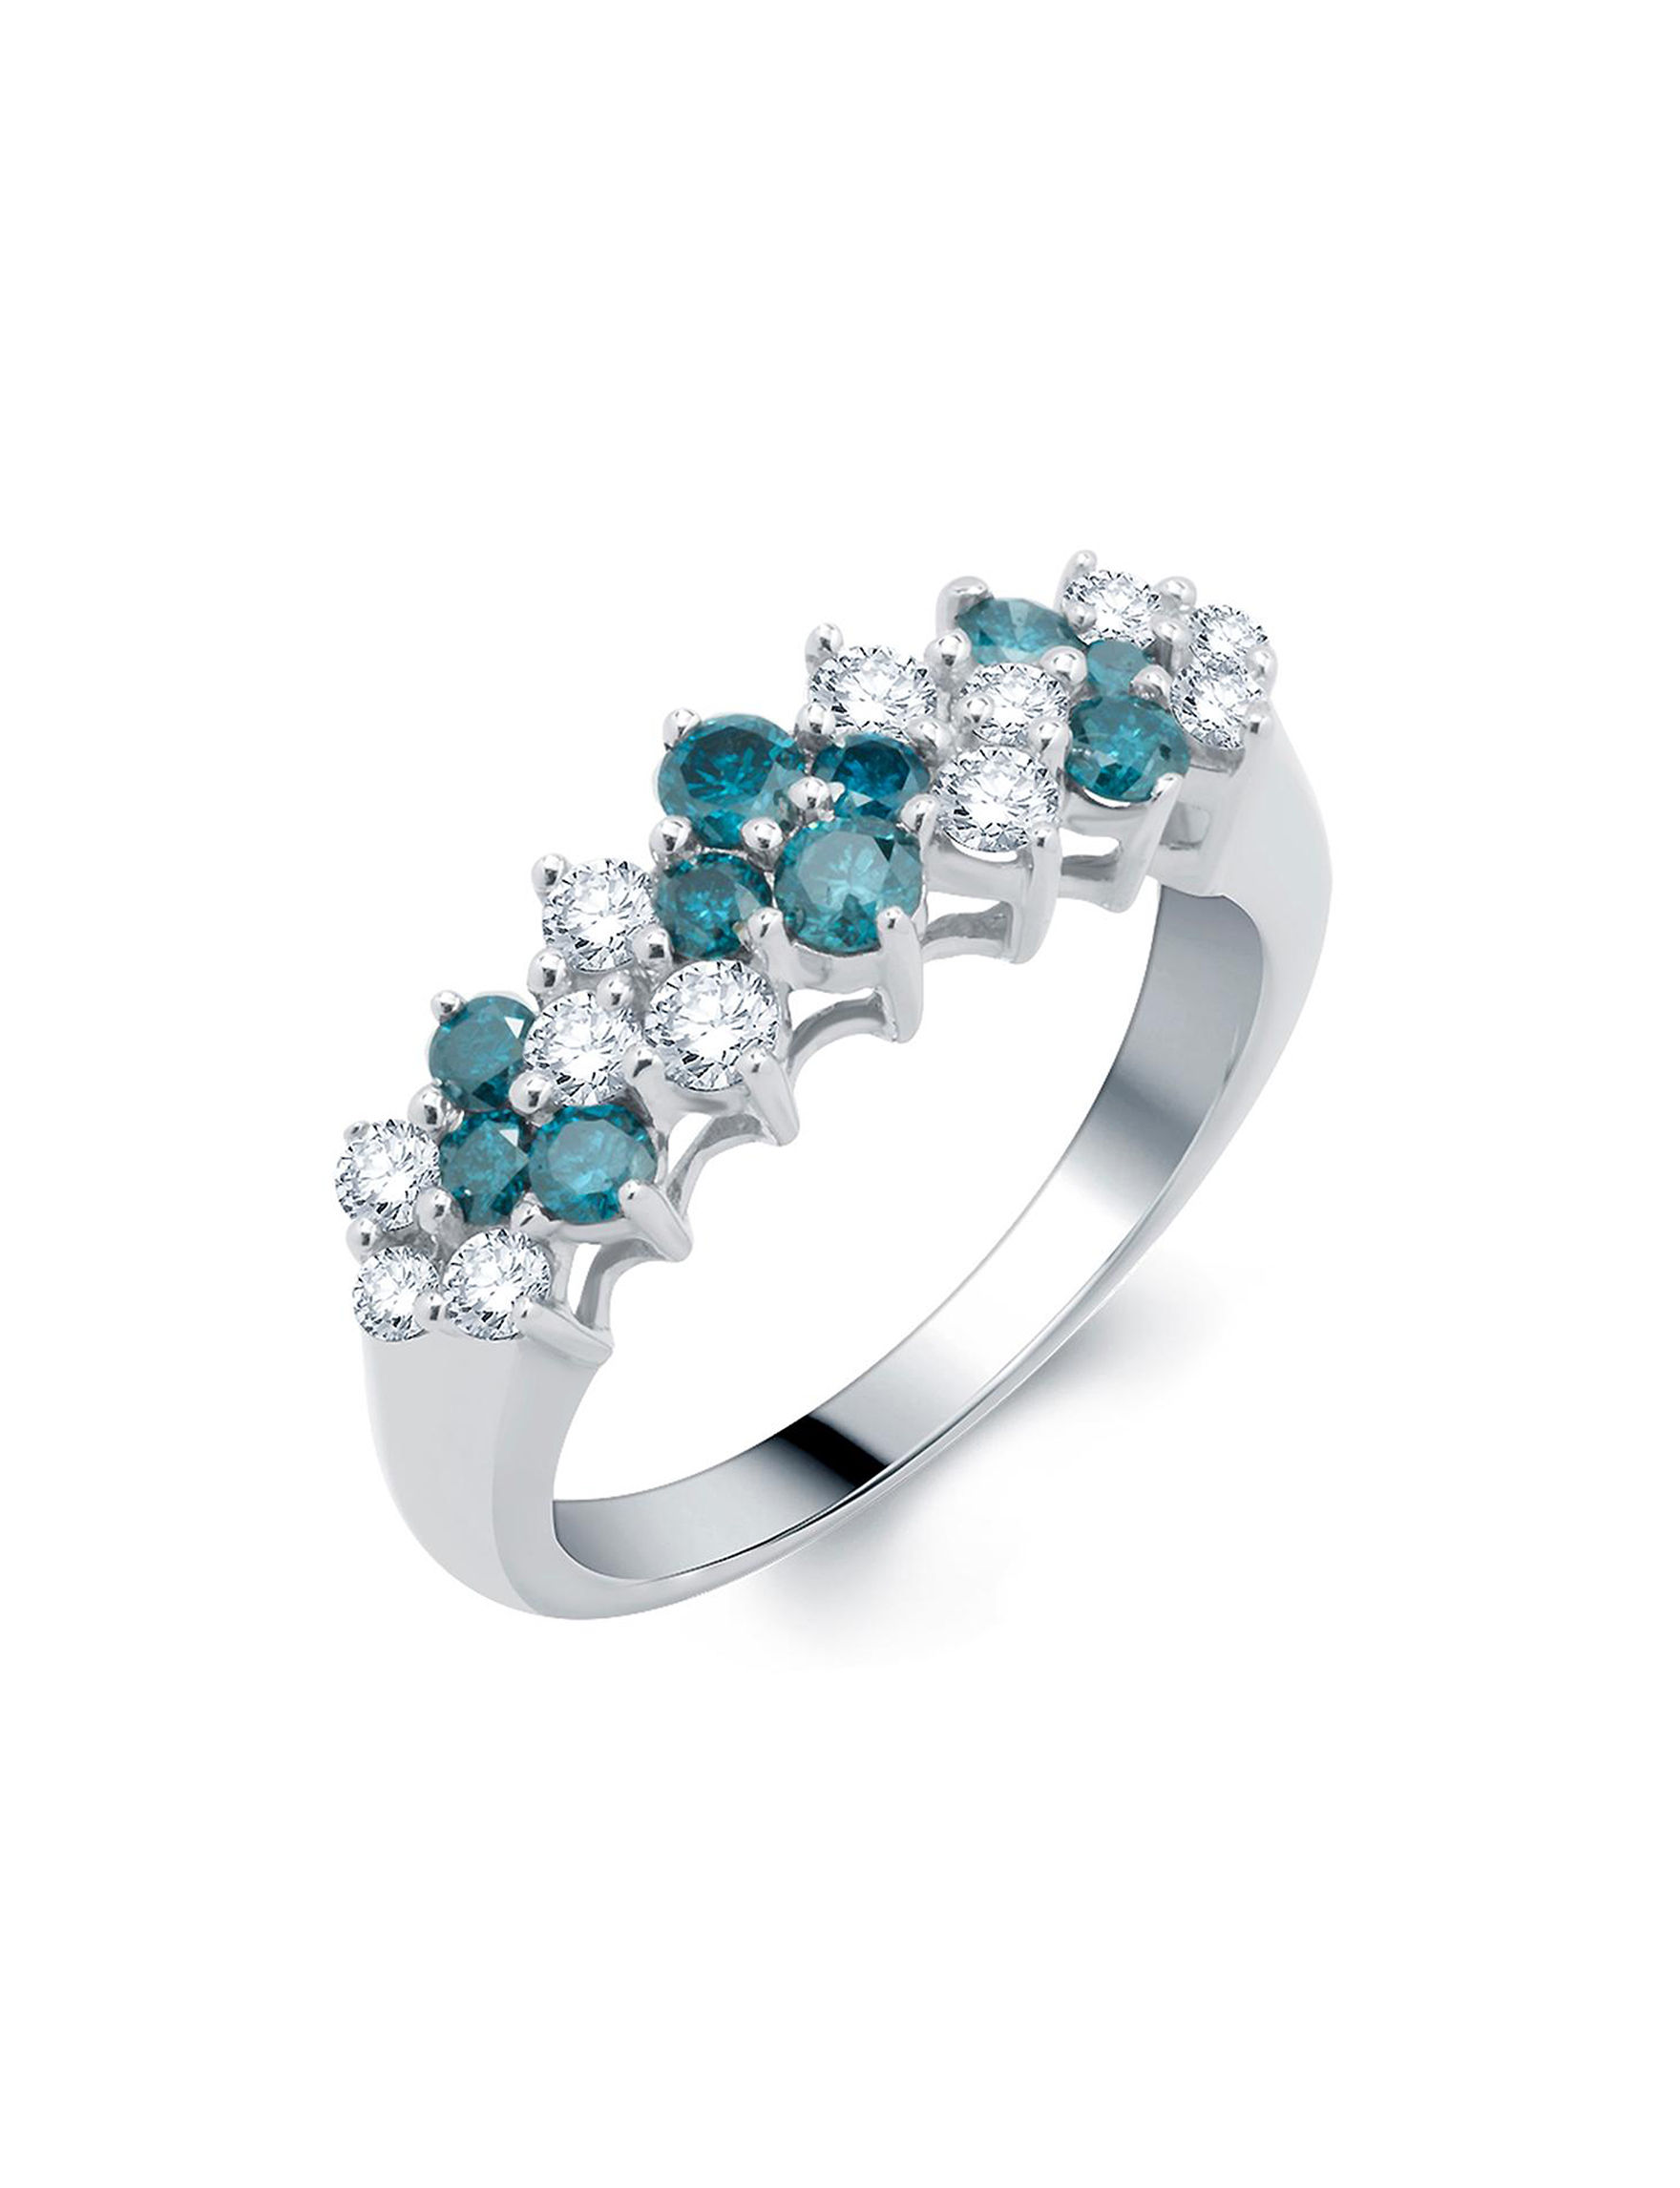 Kiran White Gold Rings Fine Jewelry